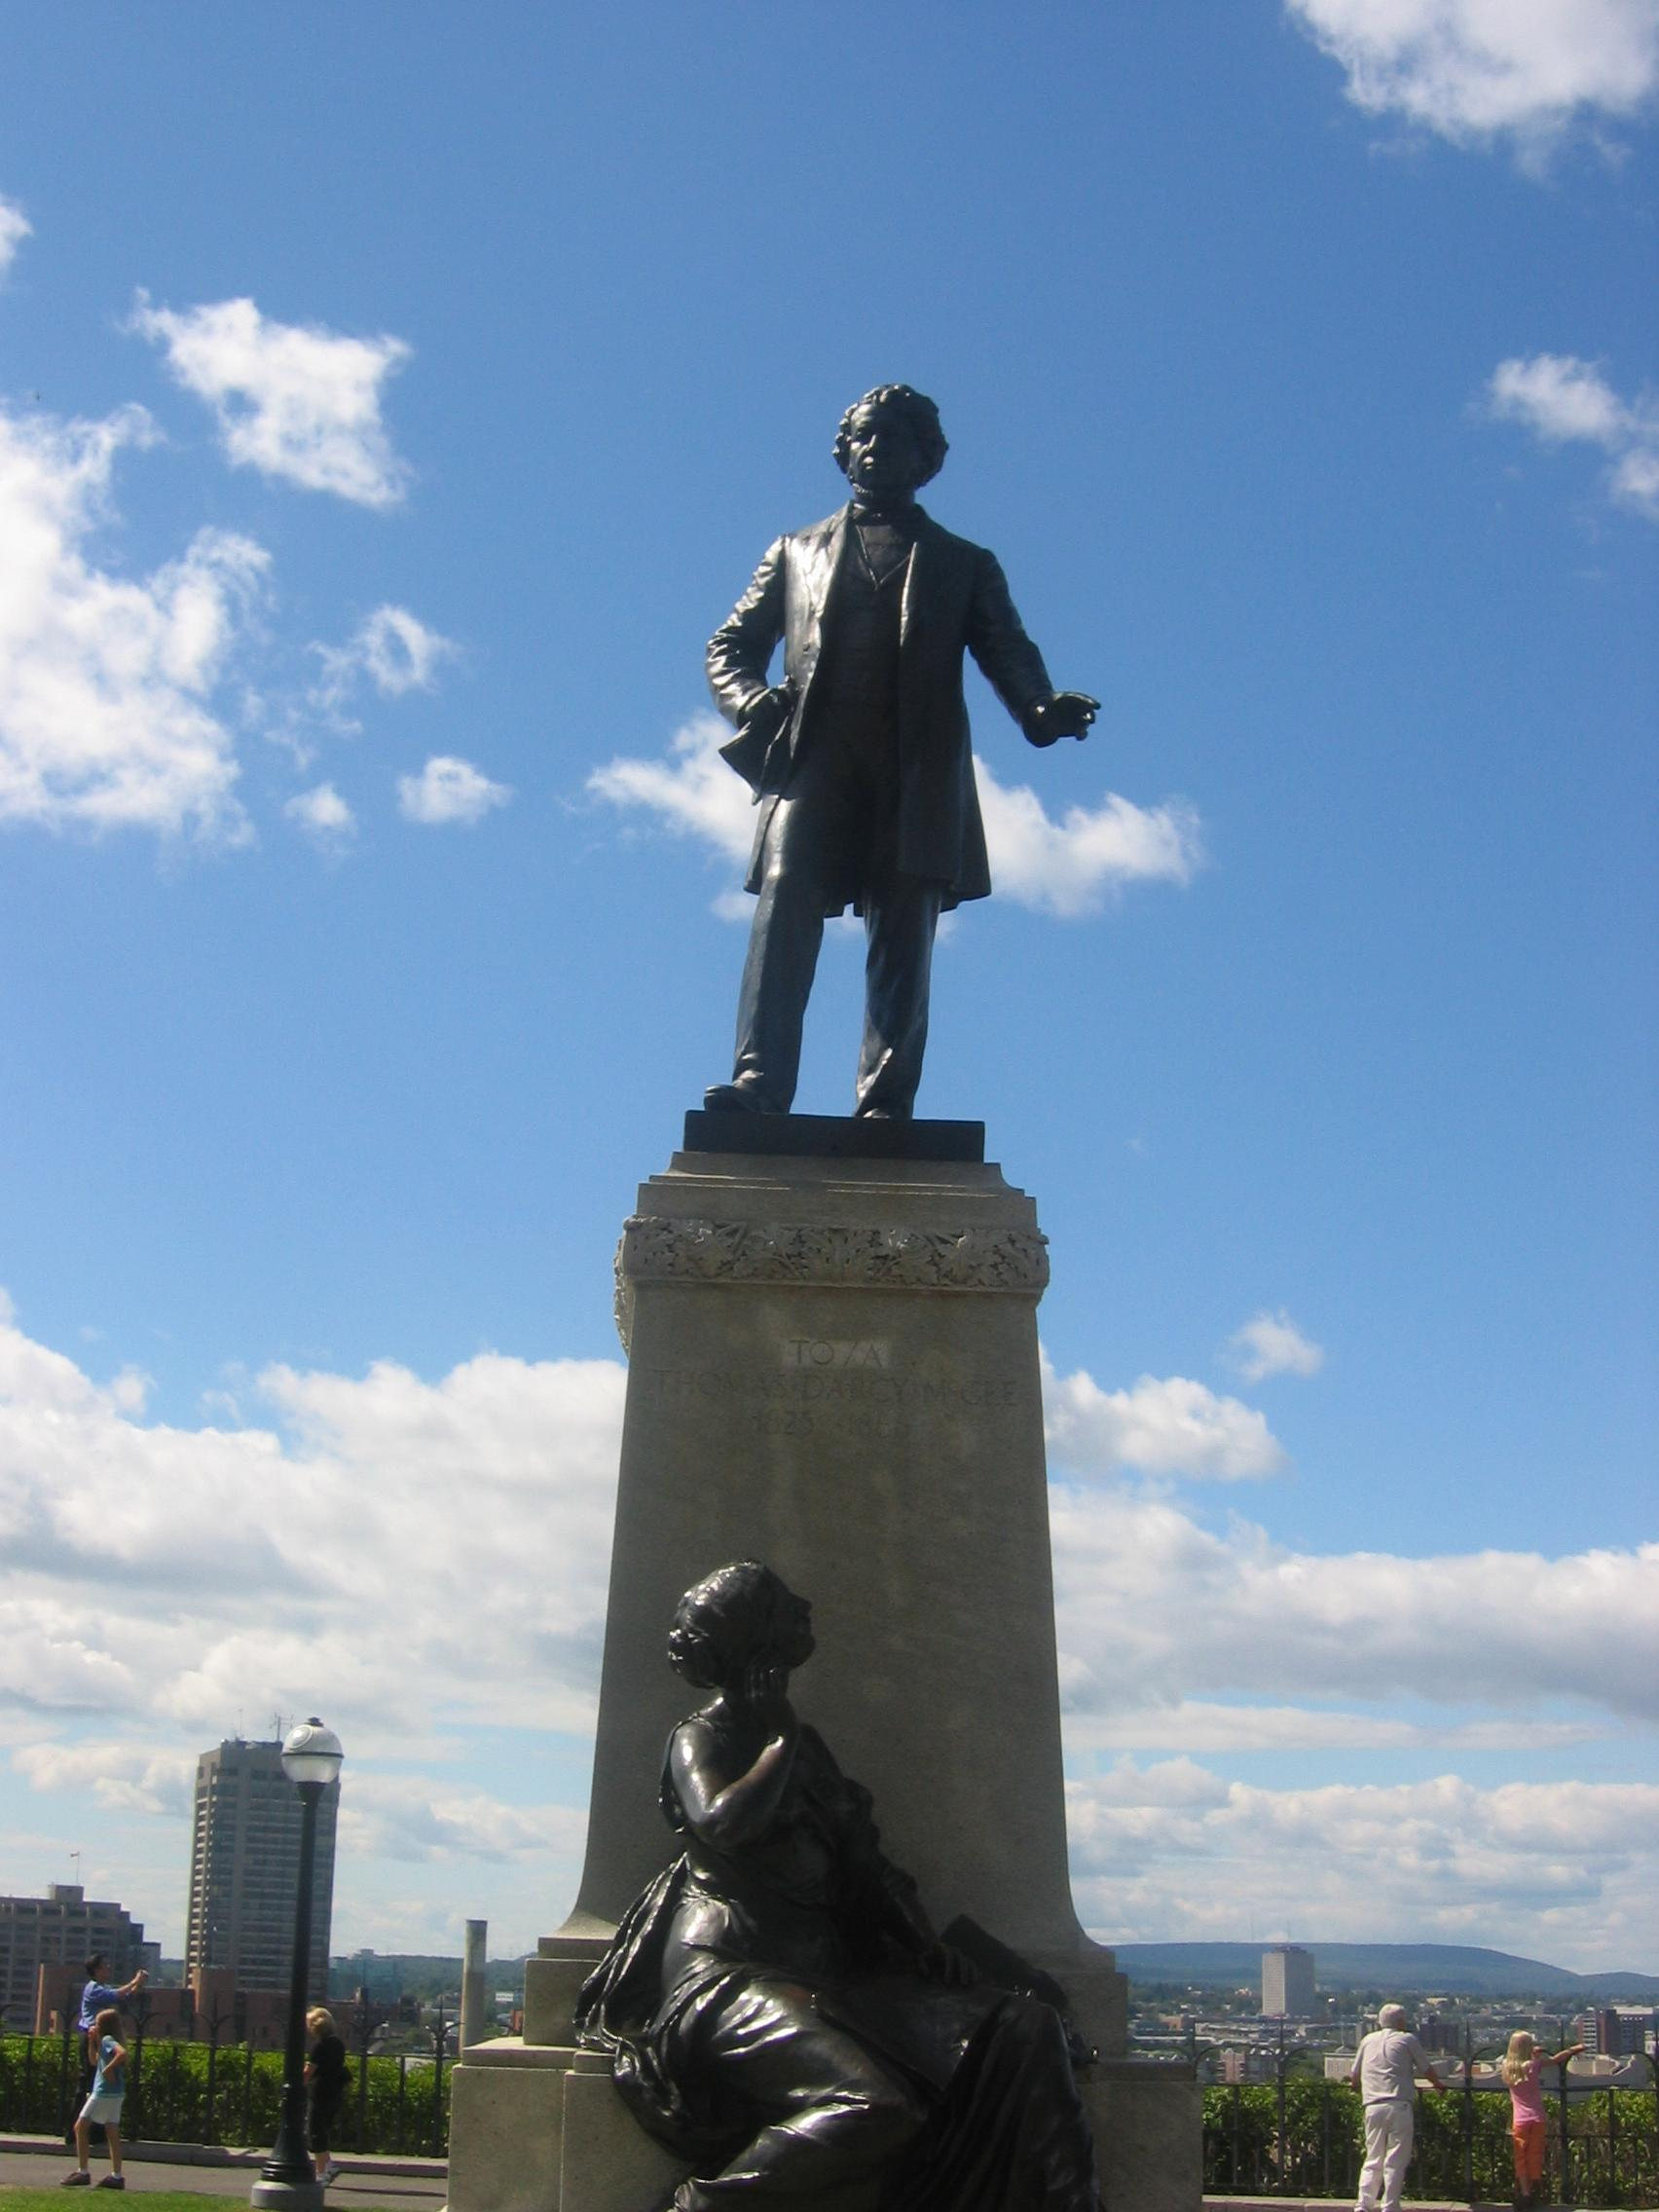 Thomas D'arcy McGee, how was he a leader?